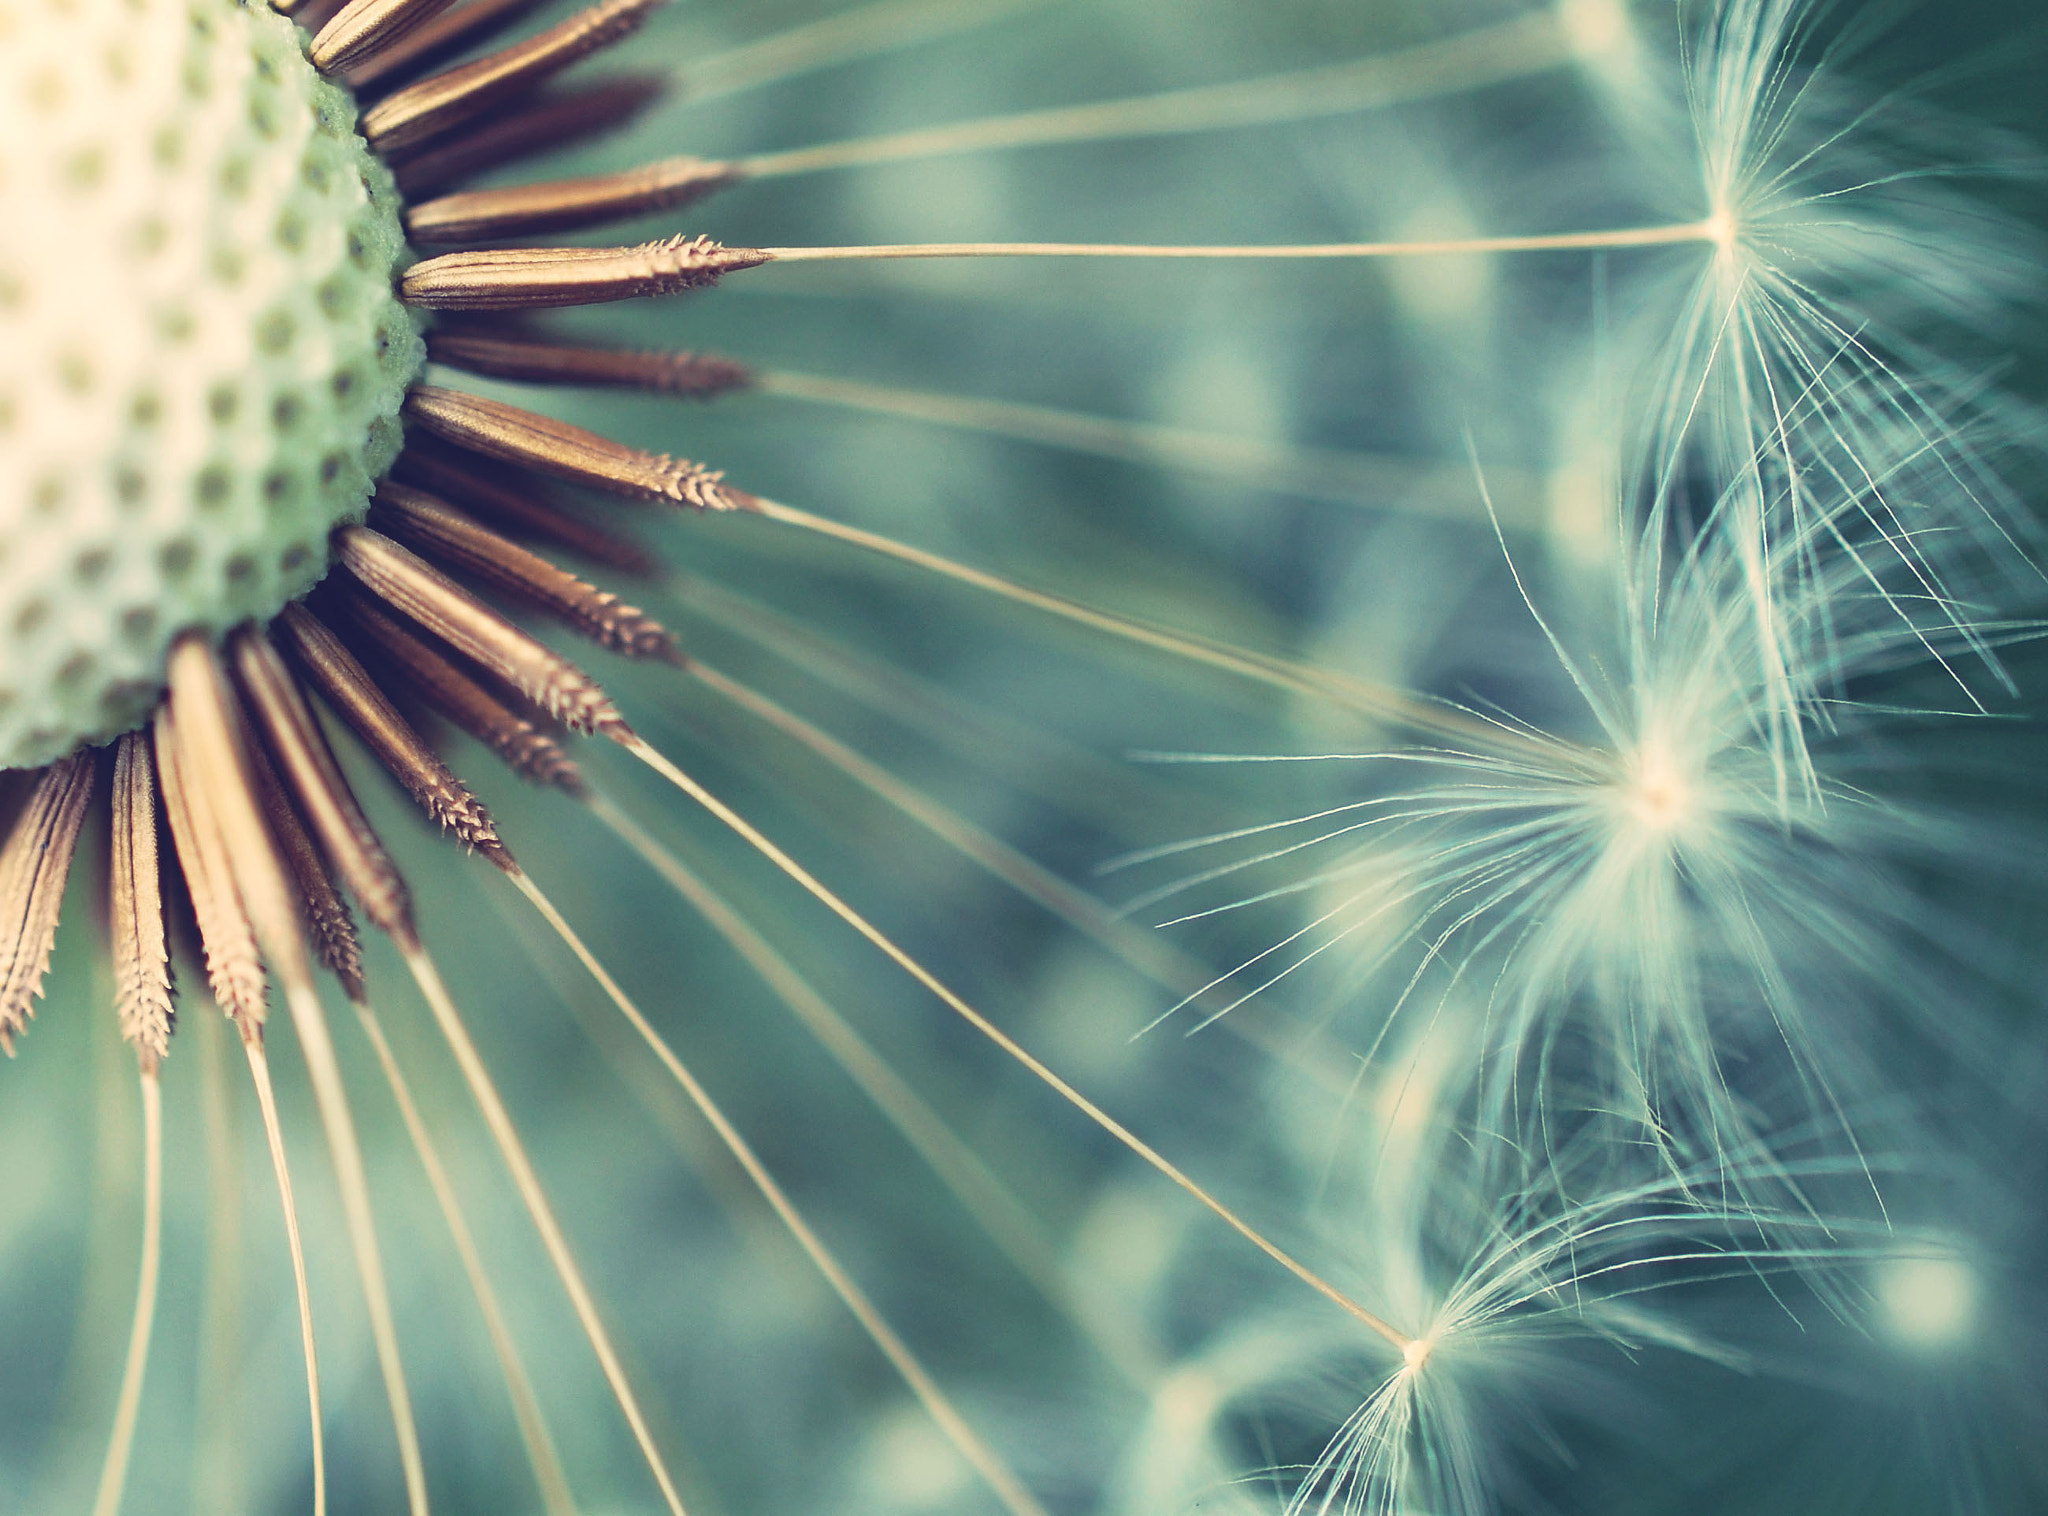 Photograph Dandelion by Ilse Noordhof on 500px